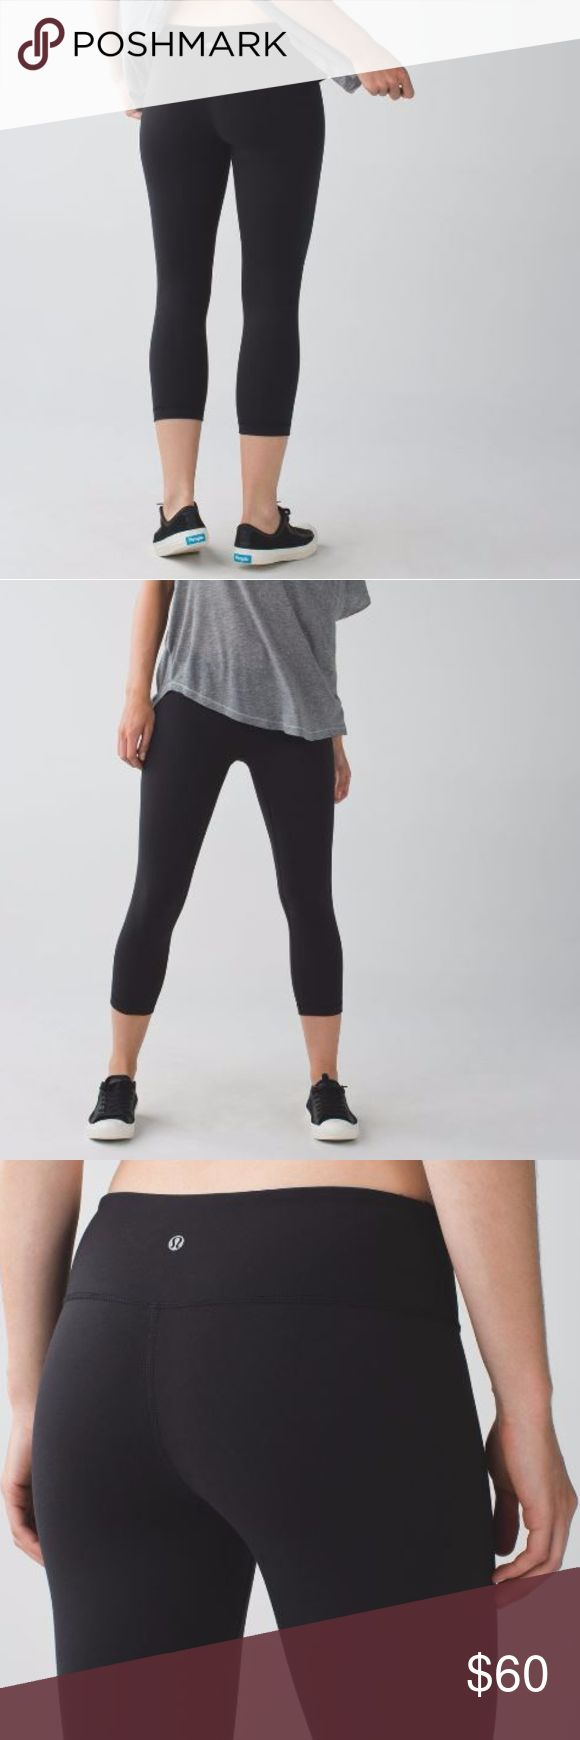 """Lululemon Wunder Under Crop • tight fit is great for checking your alignment in the mirror • wide, soft waistband is designed to eliminate muffin top • stash your keys and gym pass in our signature waistband pocket • imported • designed for: yoga, gym you name it! • fabric(s):  • fit: tight • rise: medium • inseam: 21 1/2"""" • leg opening: 11 1/8"""" • Rise: 7"""" • Waist: 25"""" • SIZE: 4 Excellent used condition lululemon athletica Pants Leggings"""